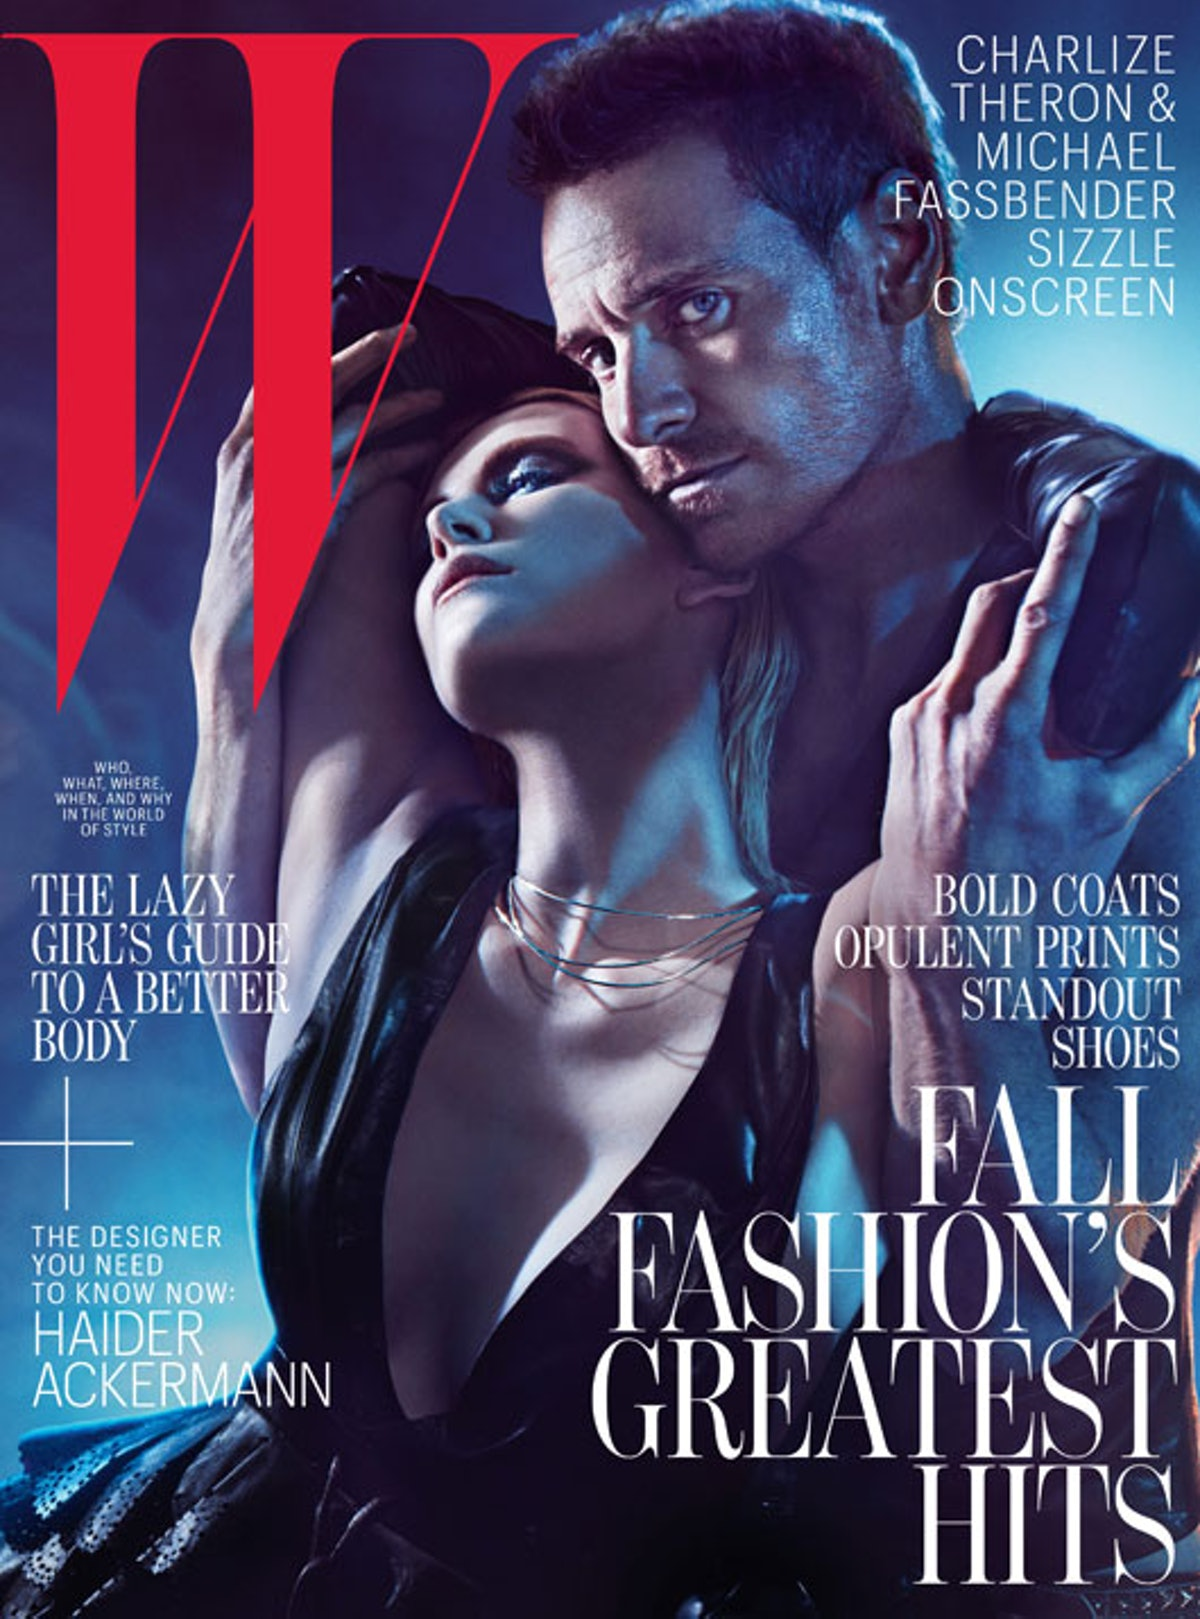 cess-charlize-theron-michael-fassbender-prometheus-cover-story-06-l.jpg